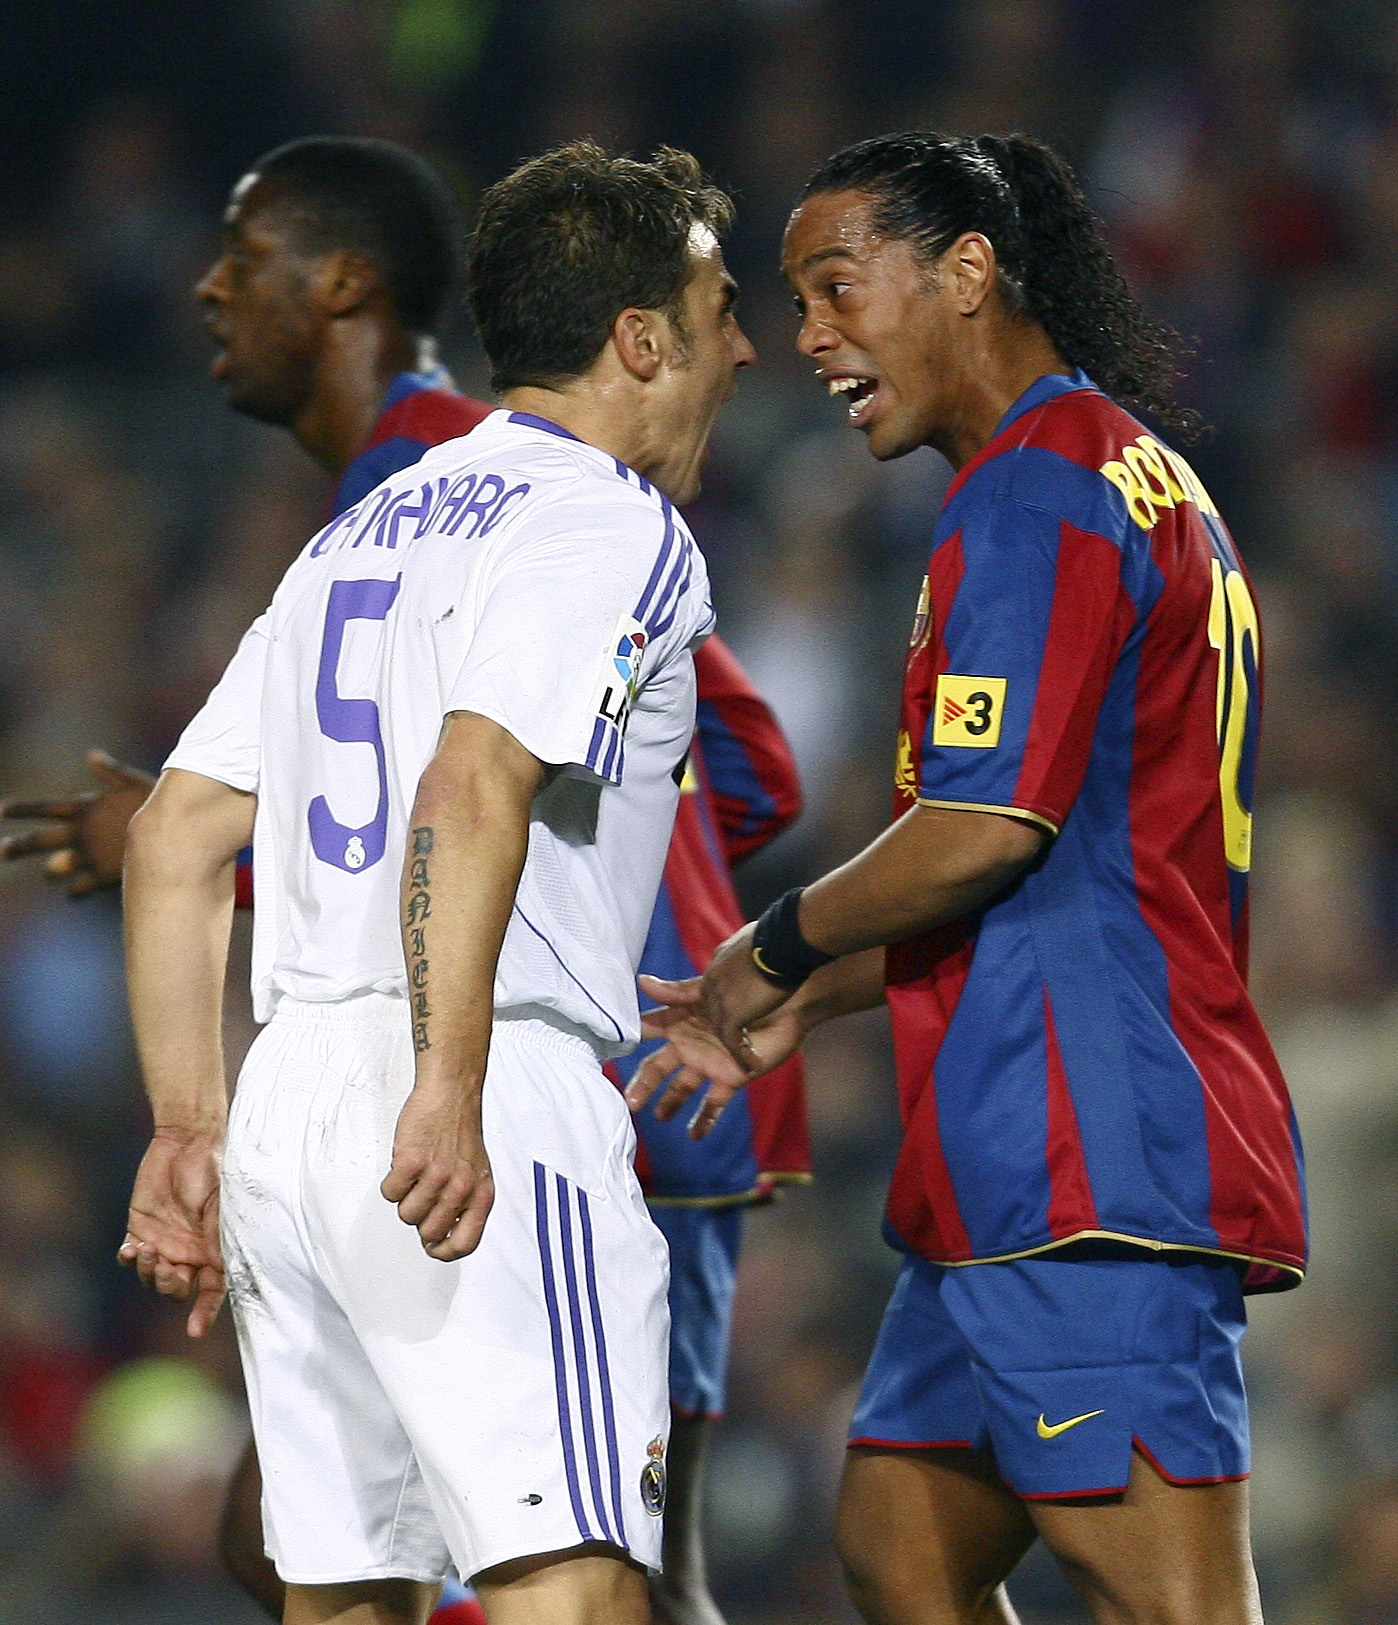 Real Madrid's Fabio Cannavaro, left, argues with Barcelona's Ronaldinho during their match in Barcelona on Sunday.